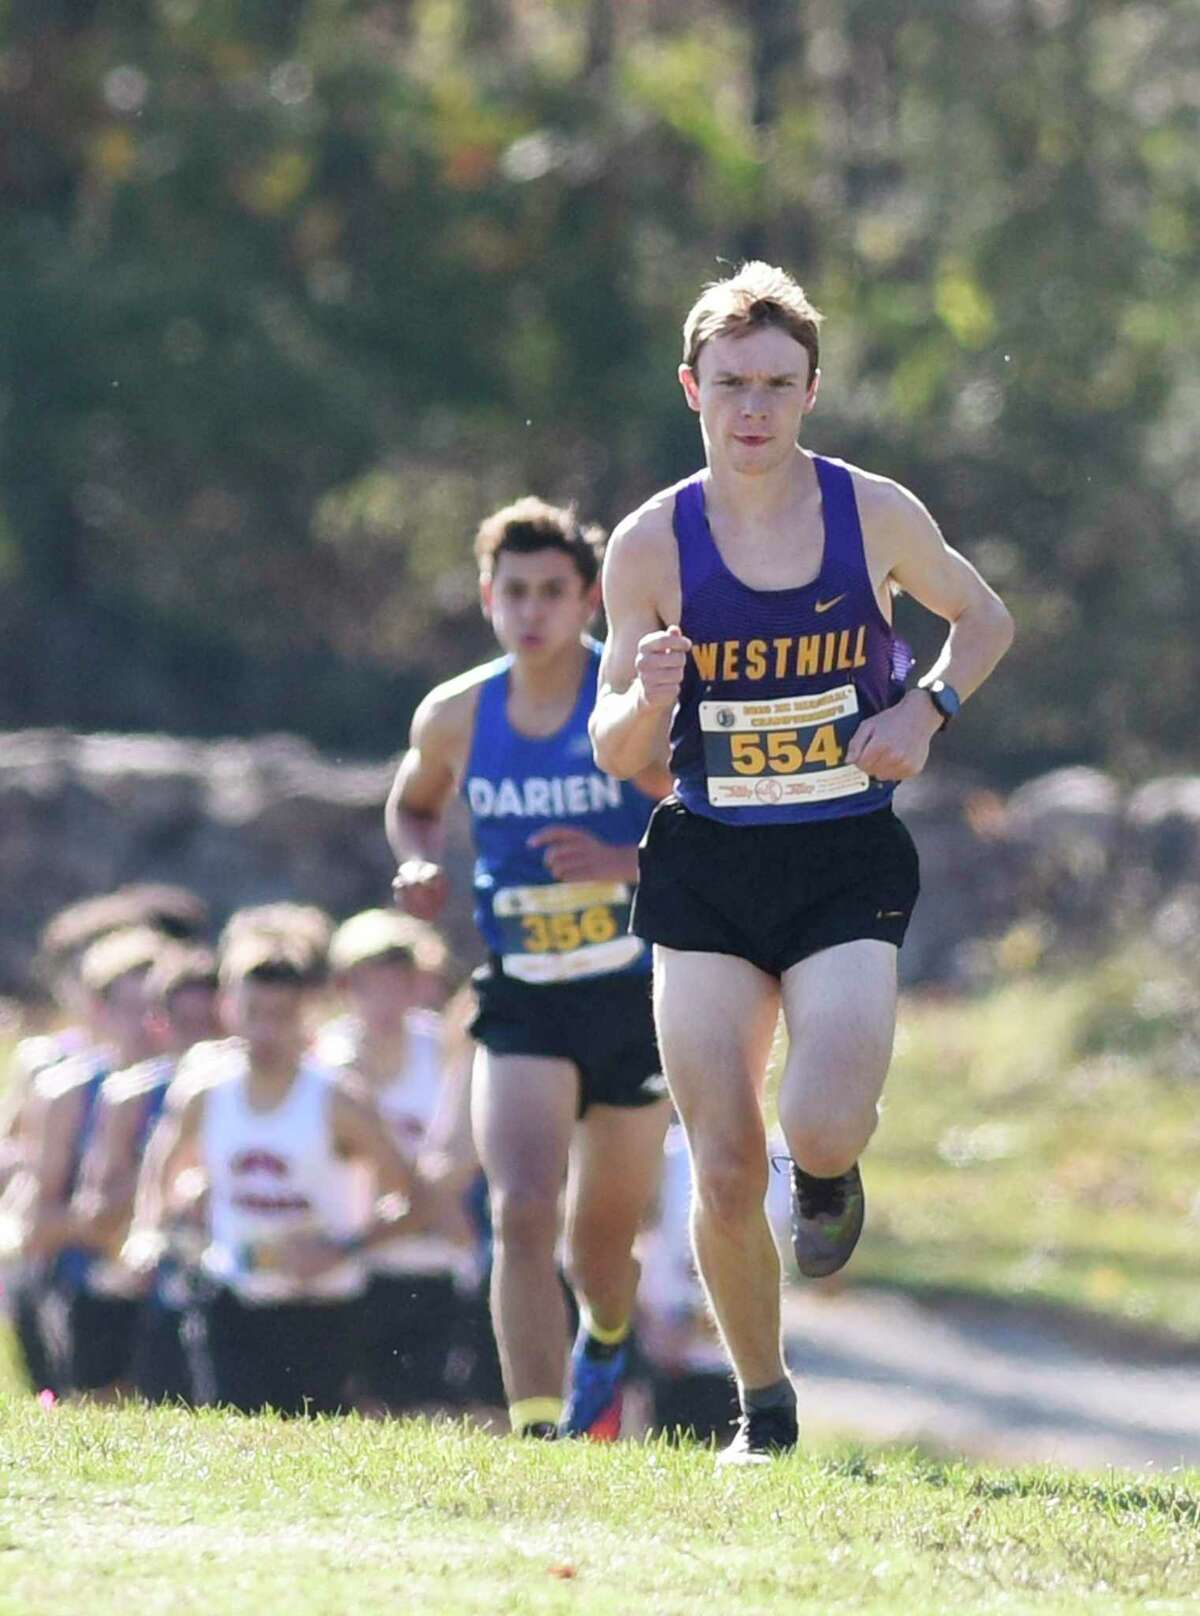 Westhill's Colin McLaughlin won the FCIAC West Region championship on Wednesday at Waveny Park in New Canaan. McLaughlin finished with a time of 15:37.